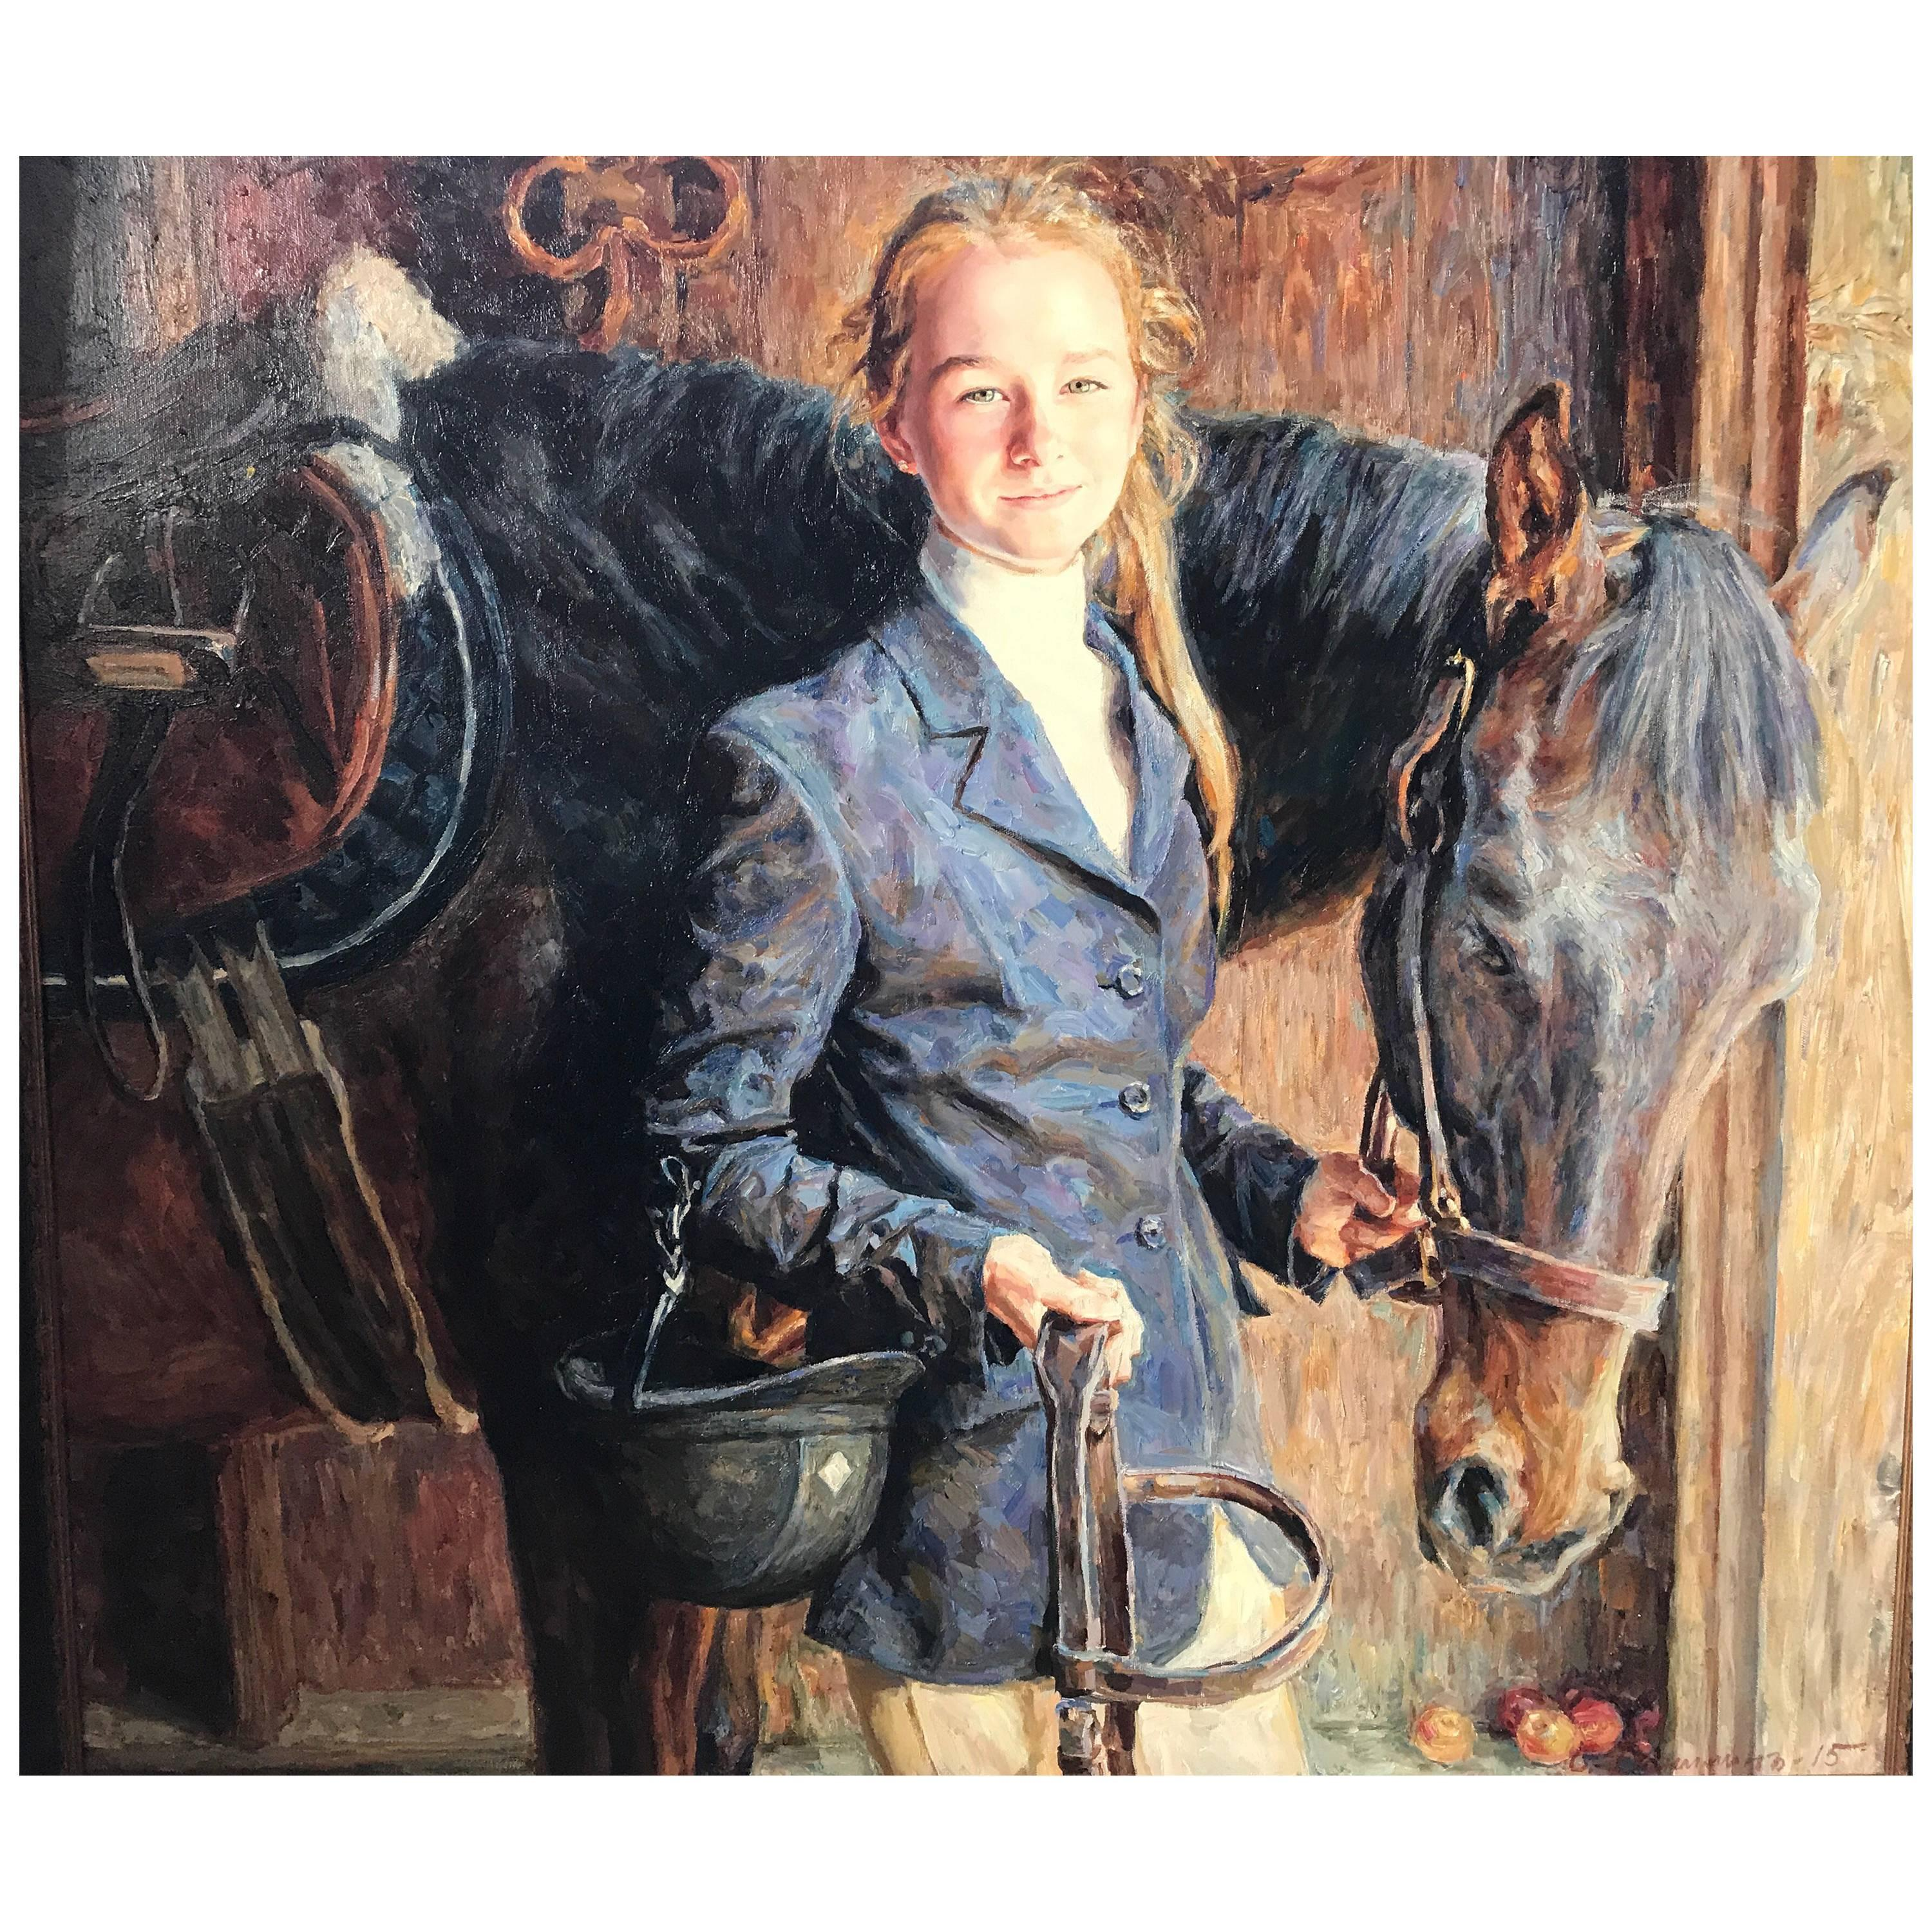 Portrait by Sergei Danilin of Young Girl with Horse